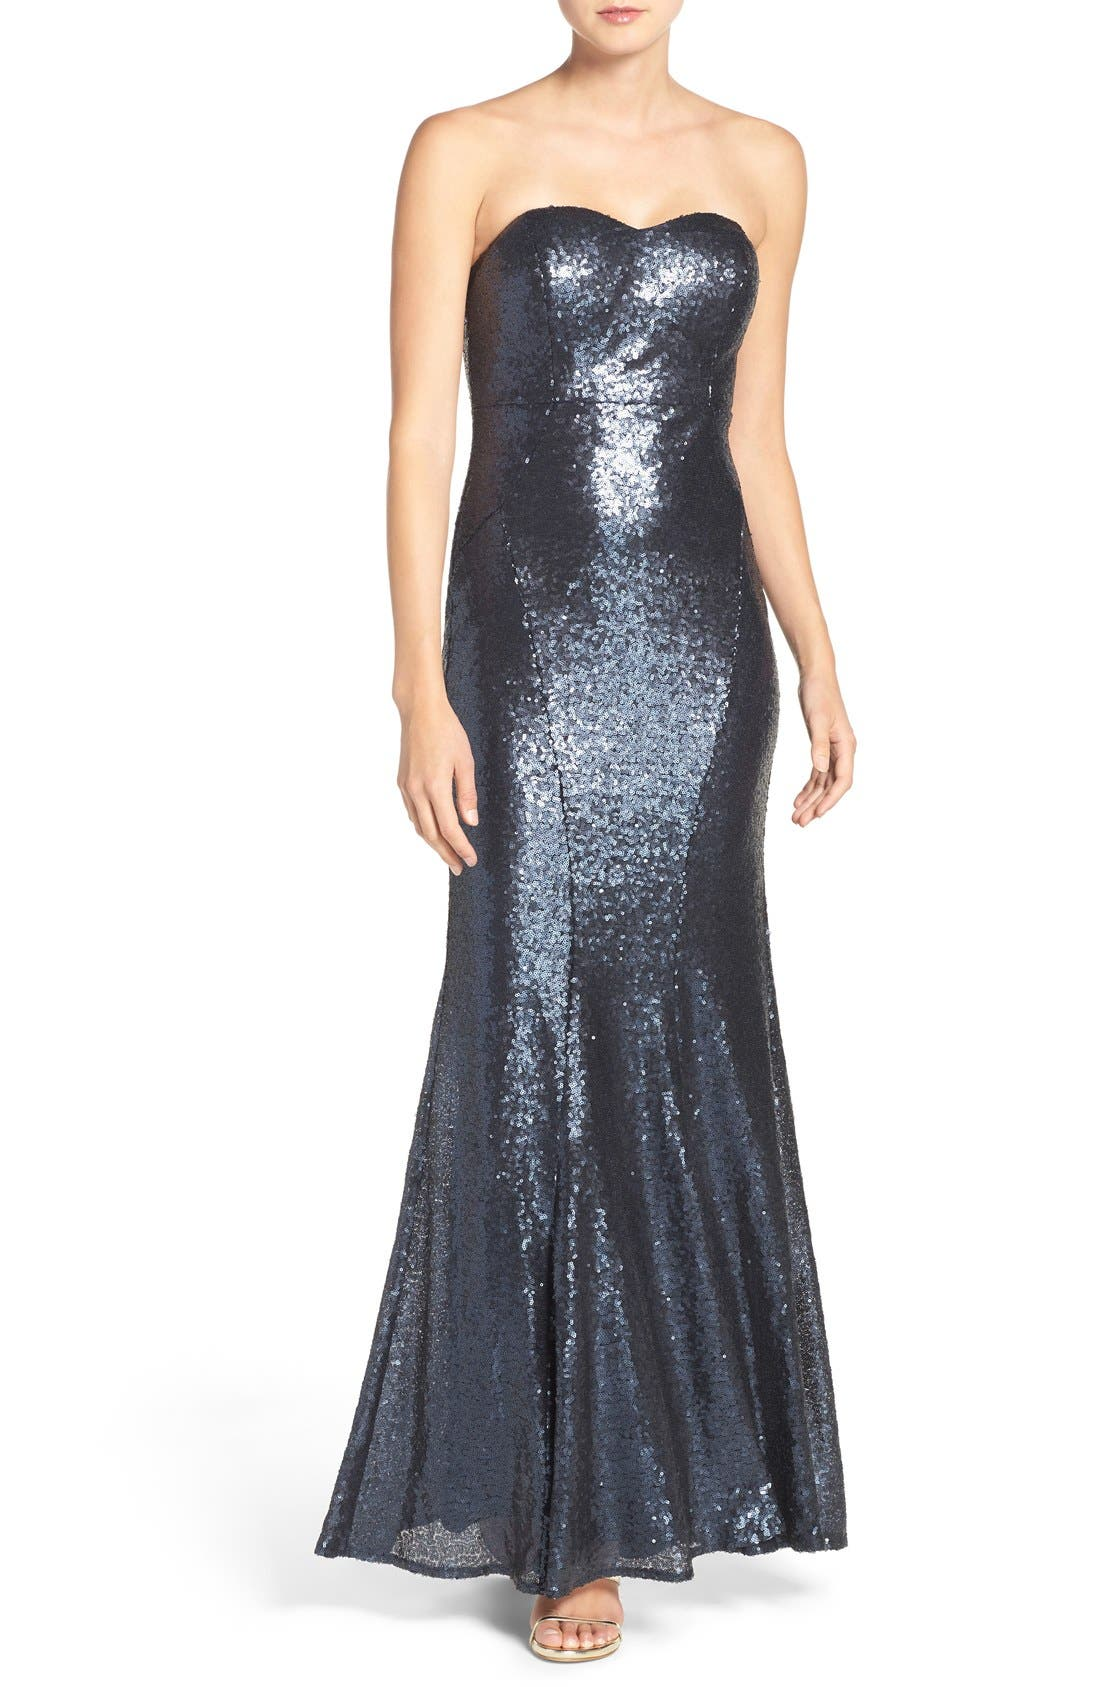 Alternate Image 1 Selected - Lulus Strapless Sequin Mermaid Gown